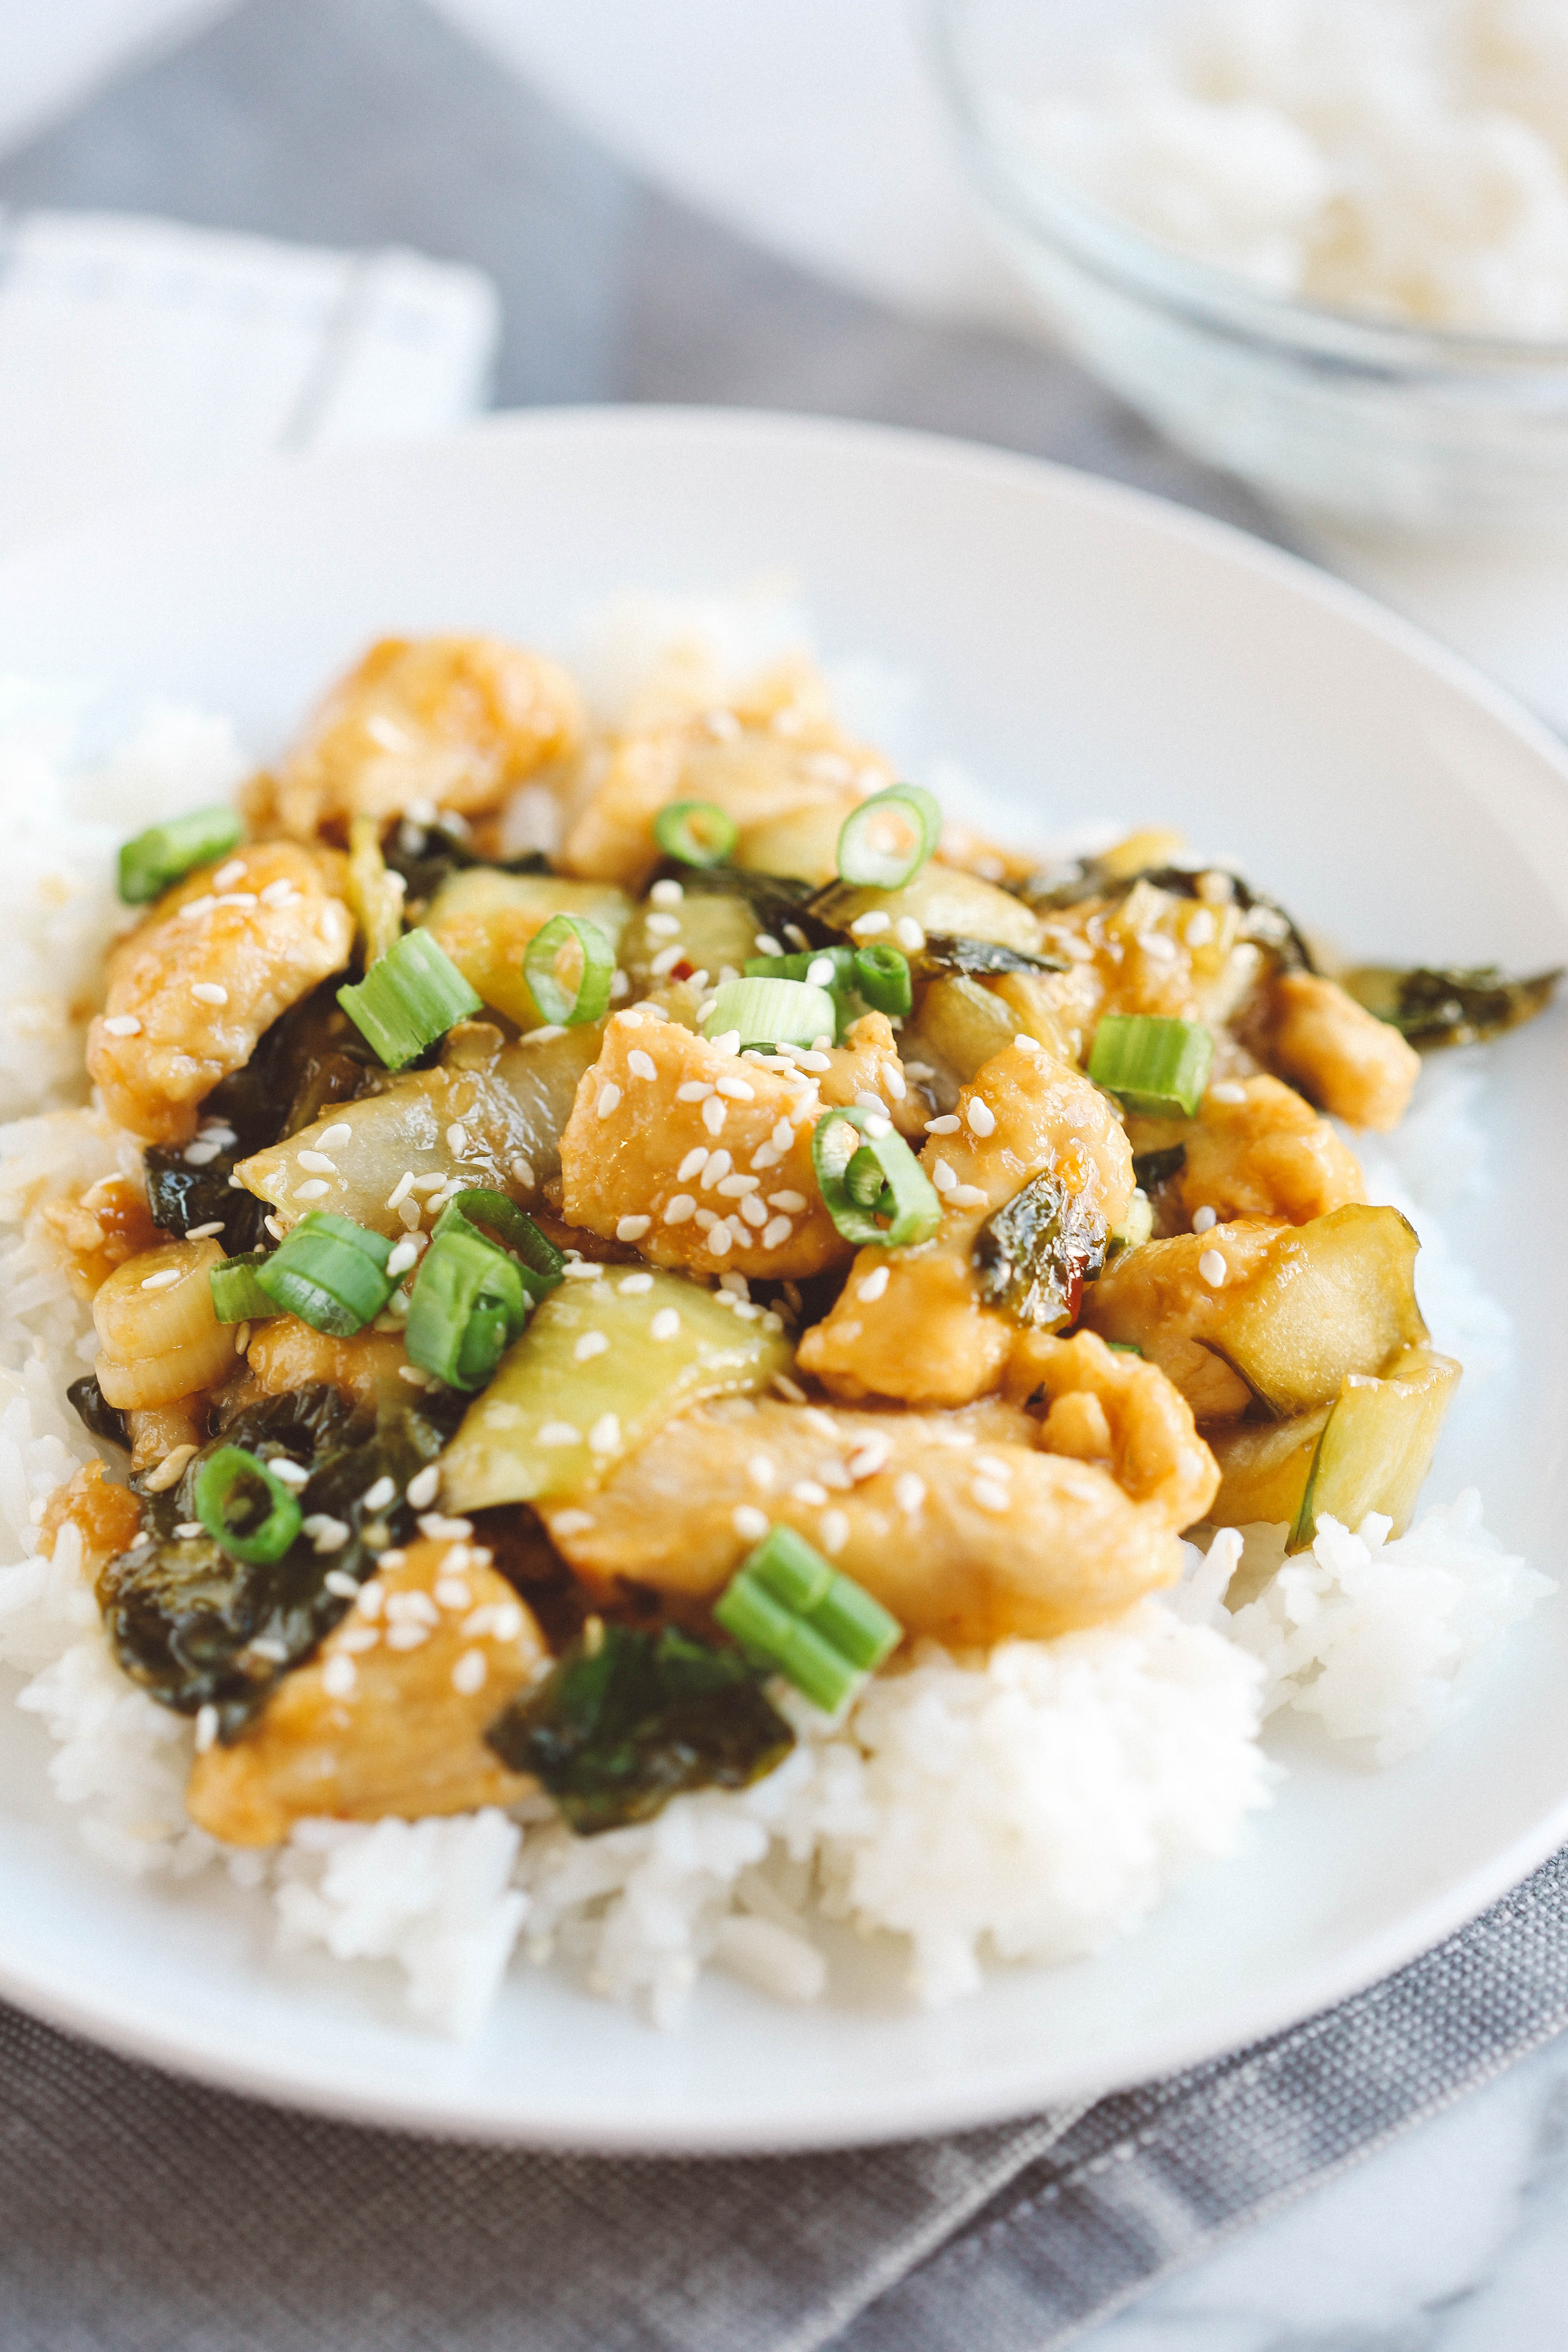 Skip the take-out and make this EASY Sesame Chicken! The perfect weeknight comfort meal made with all fresh ingredients in under 30 minutes!